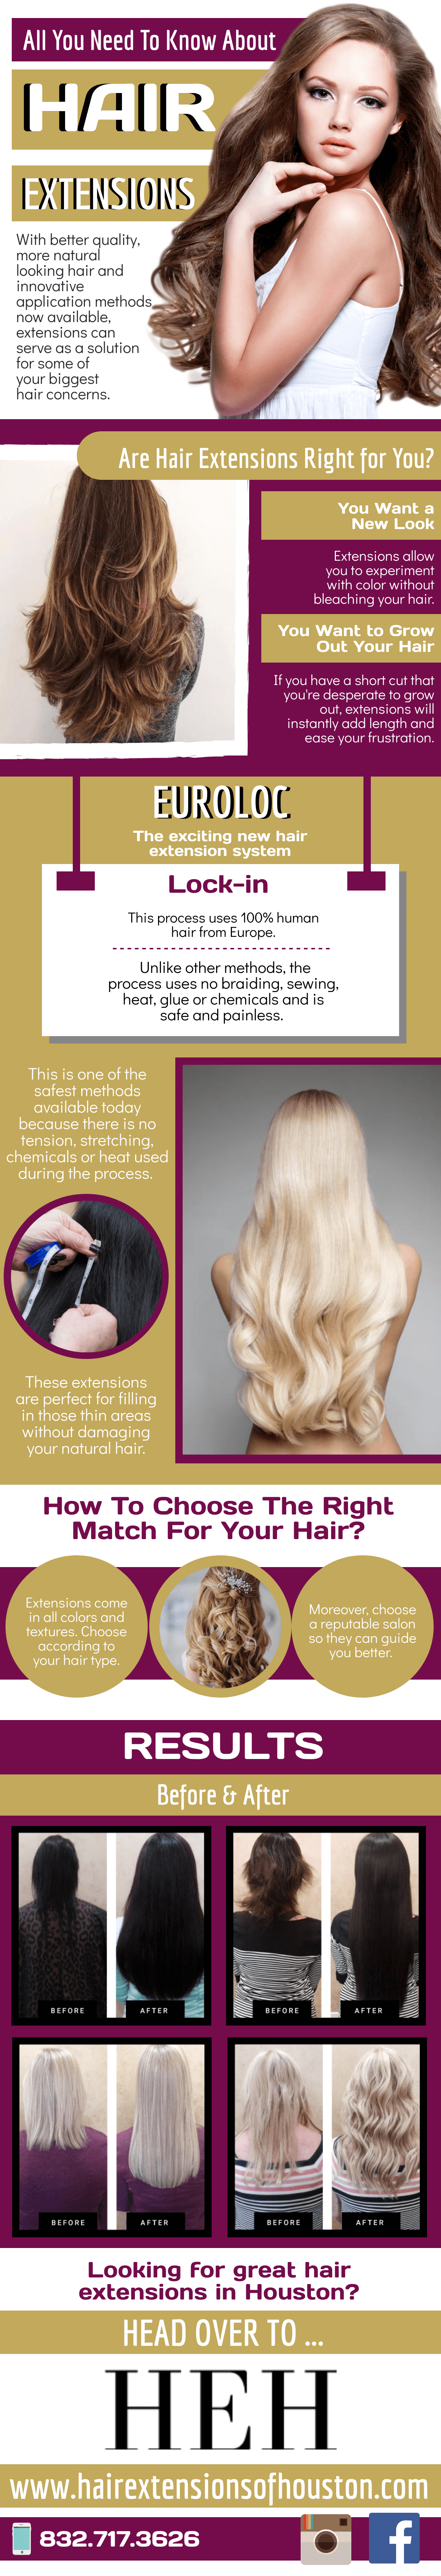 All You Need To Know About Hair Extensions